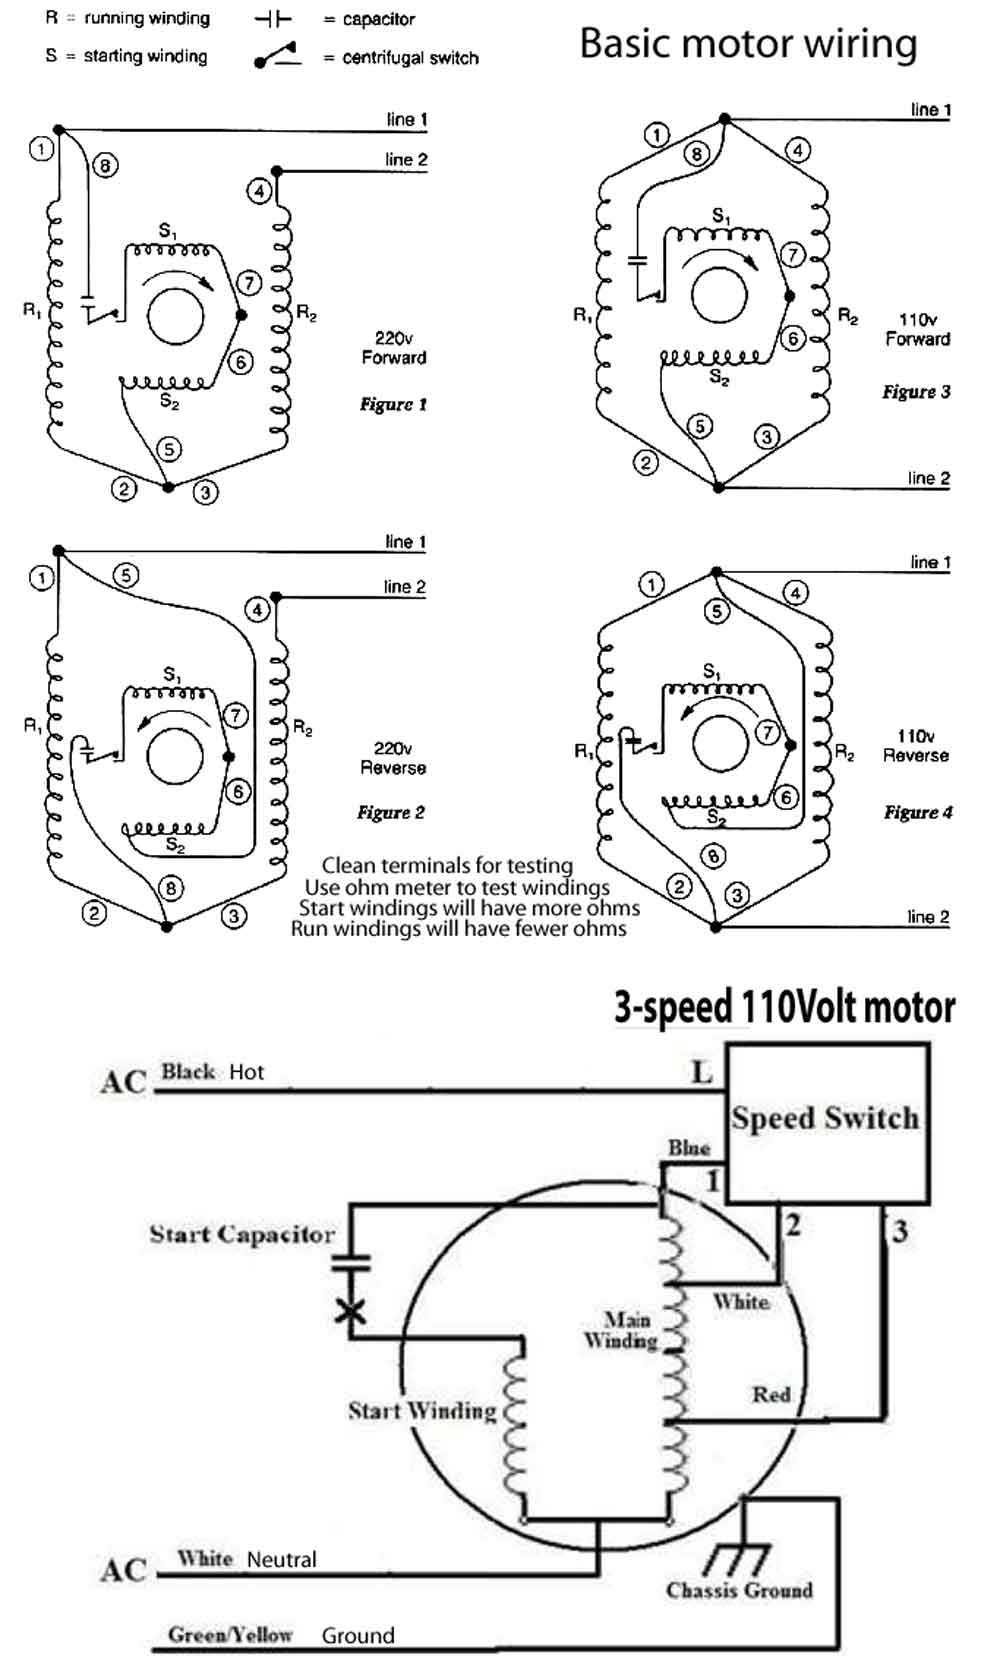 hight resolution of basic motor wiring illustration jpg